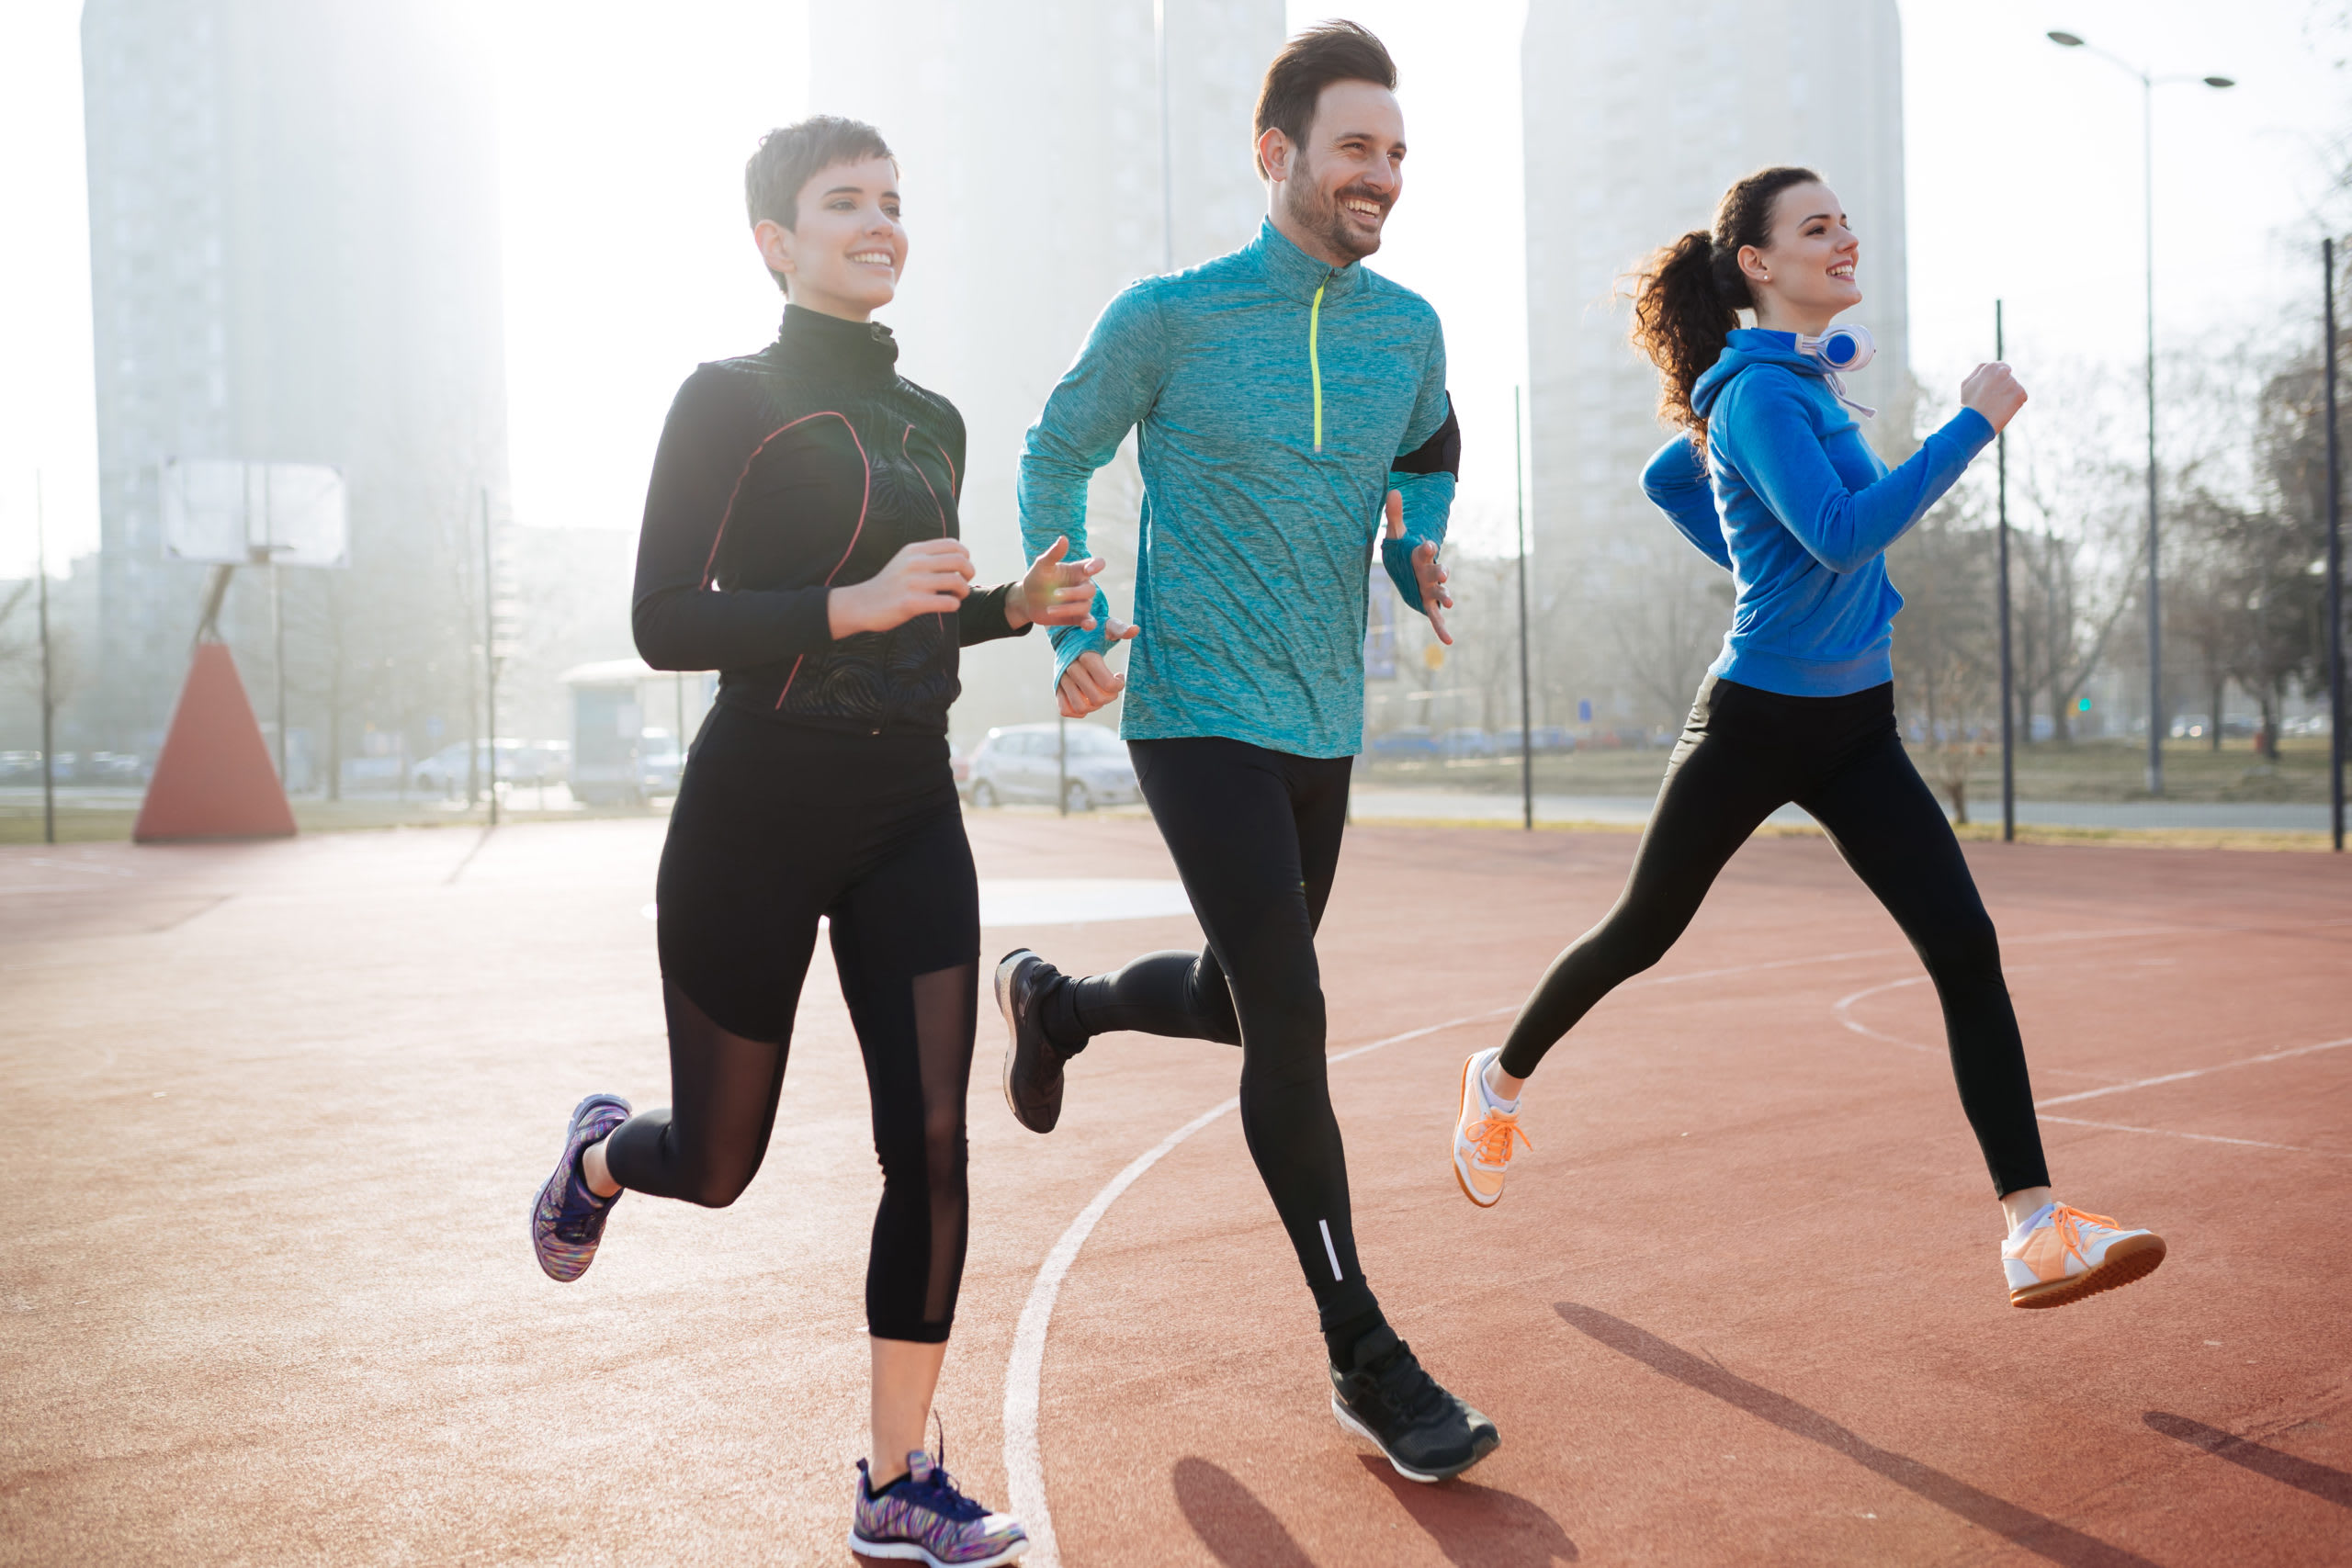 Happy friends fitness training and running together outdoors living active healthy lifestyle